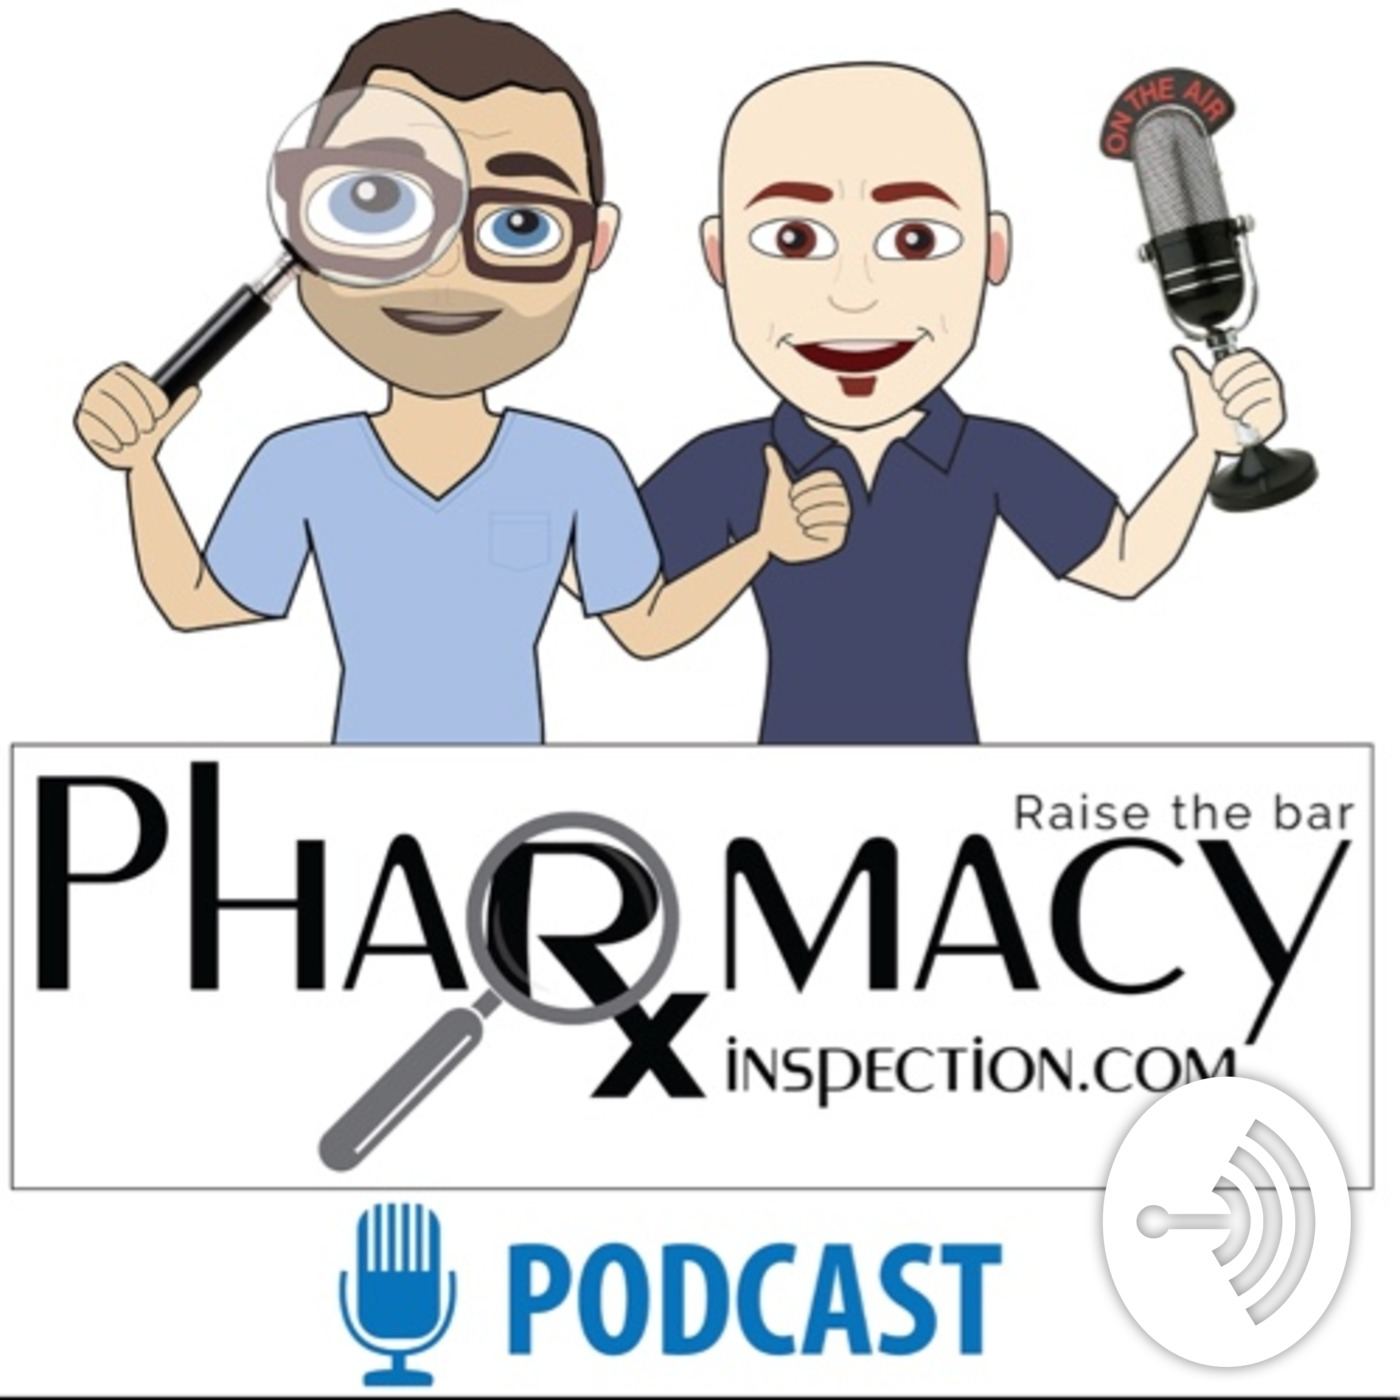 Pharmacy Inspection Podcast Episode 29 - Process Improvement